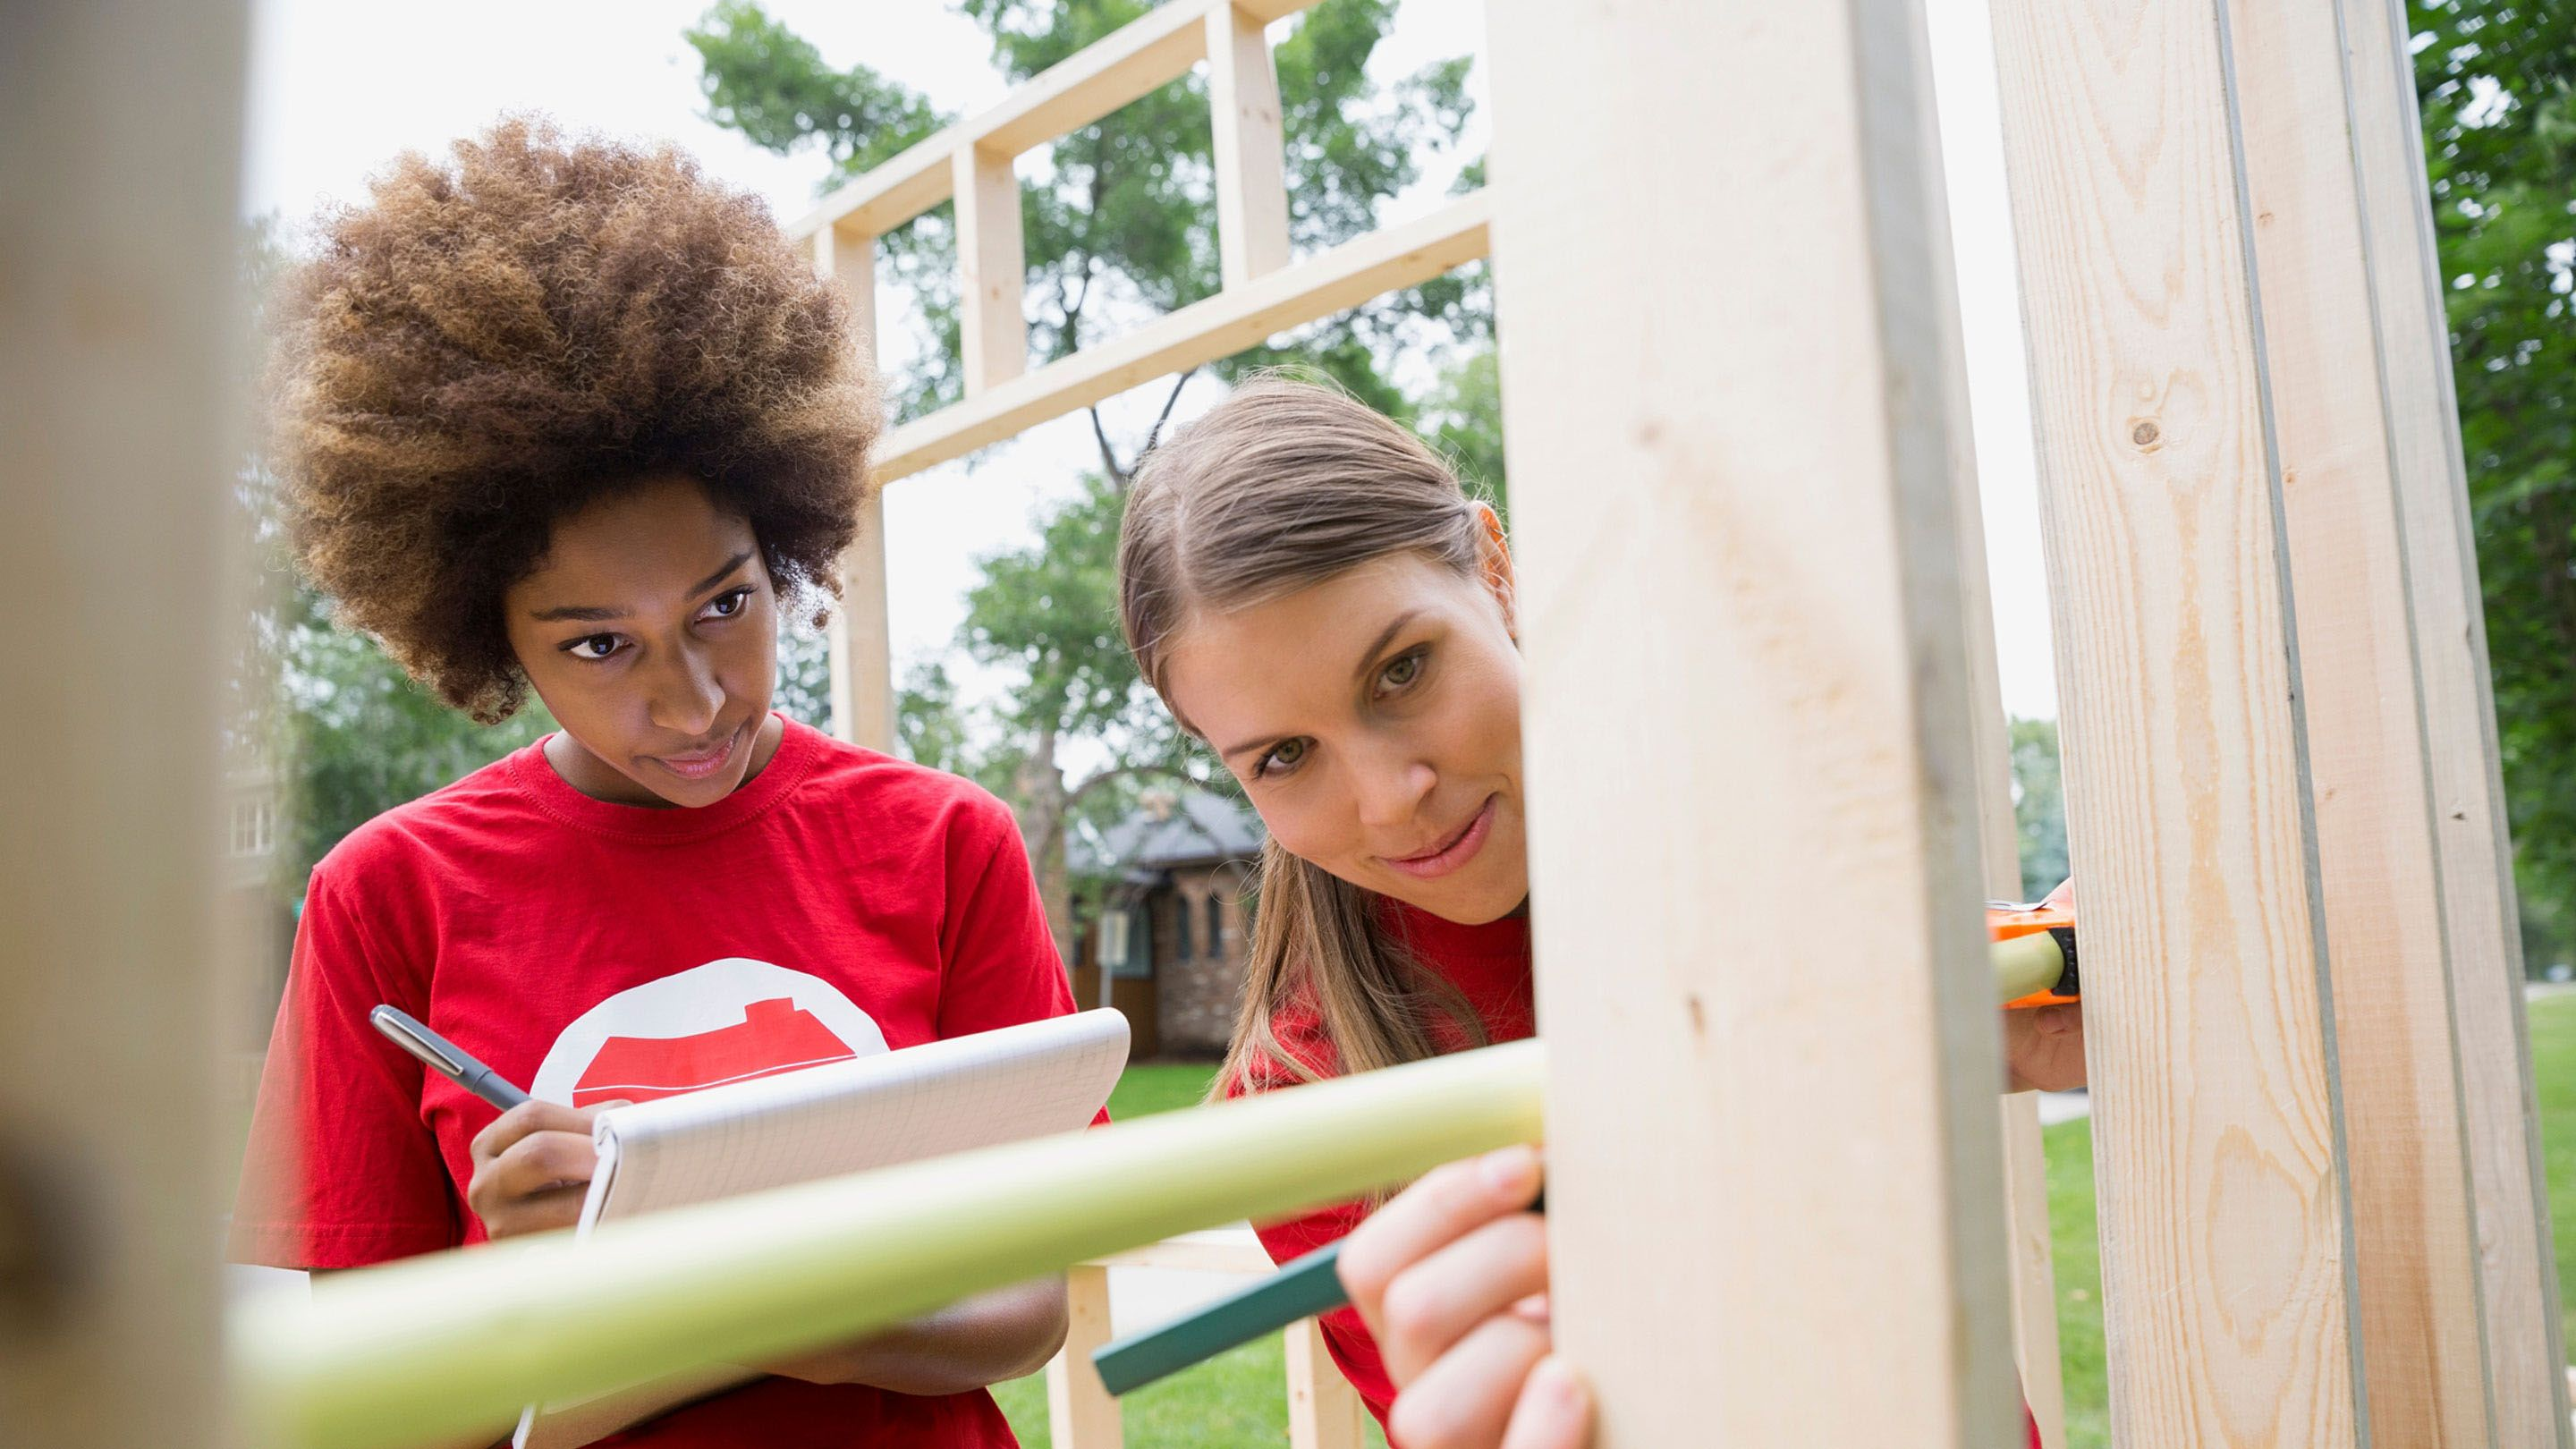 Two young women work on a building under construction.